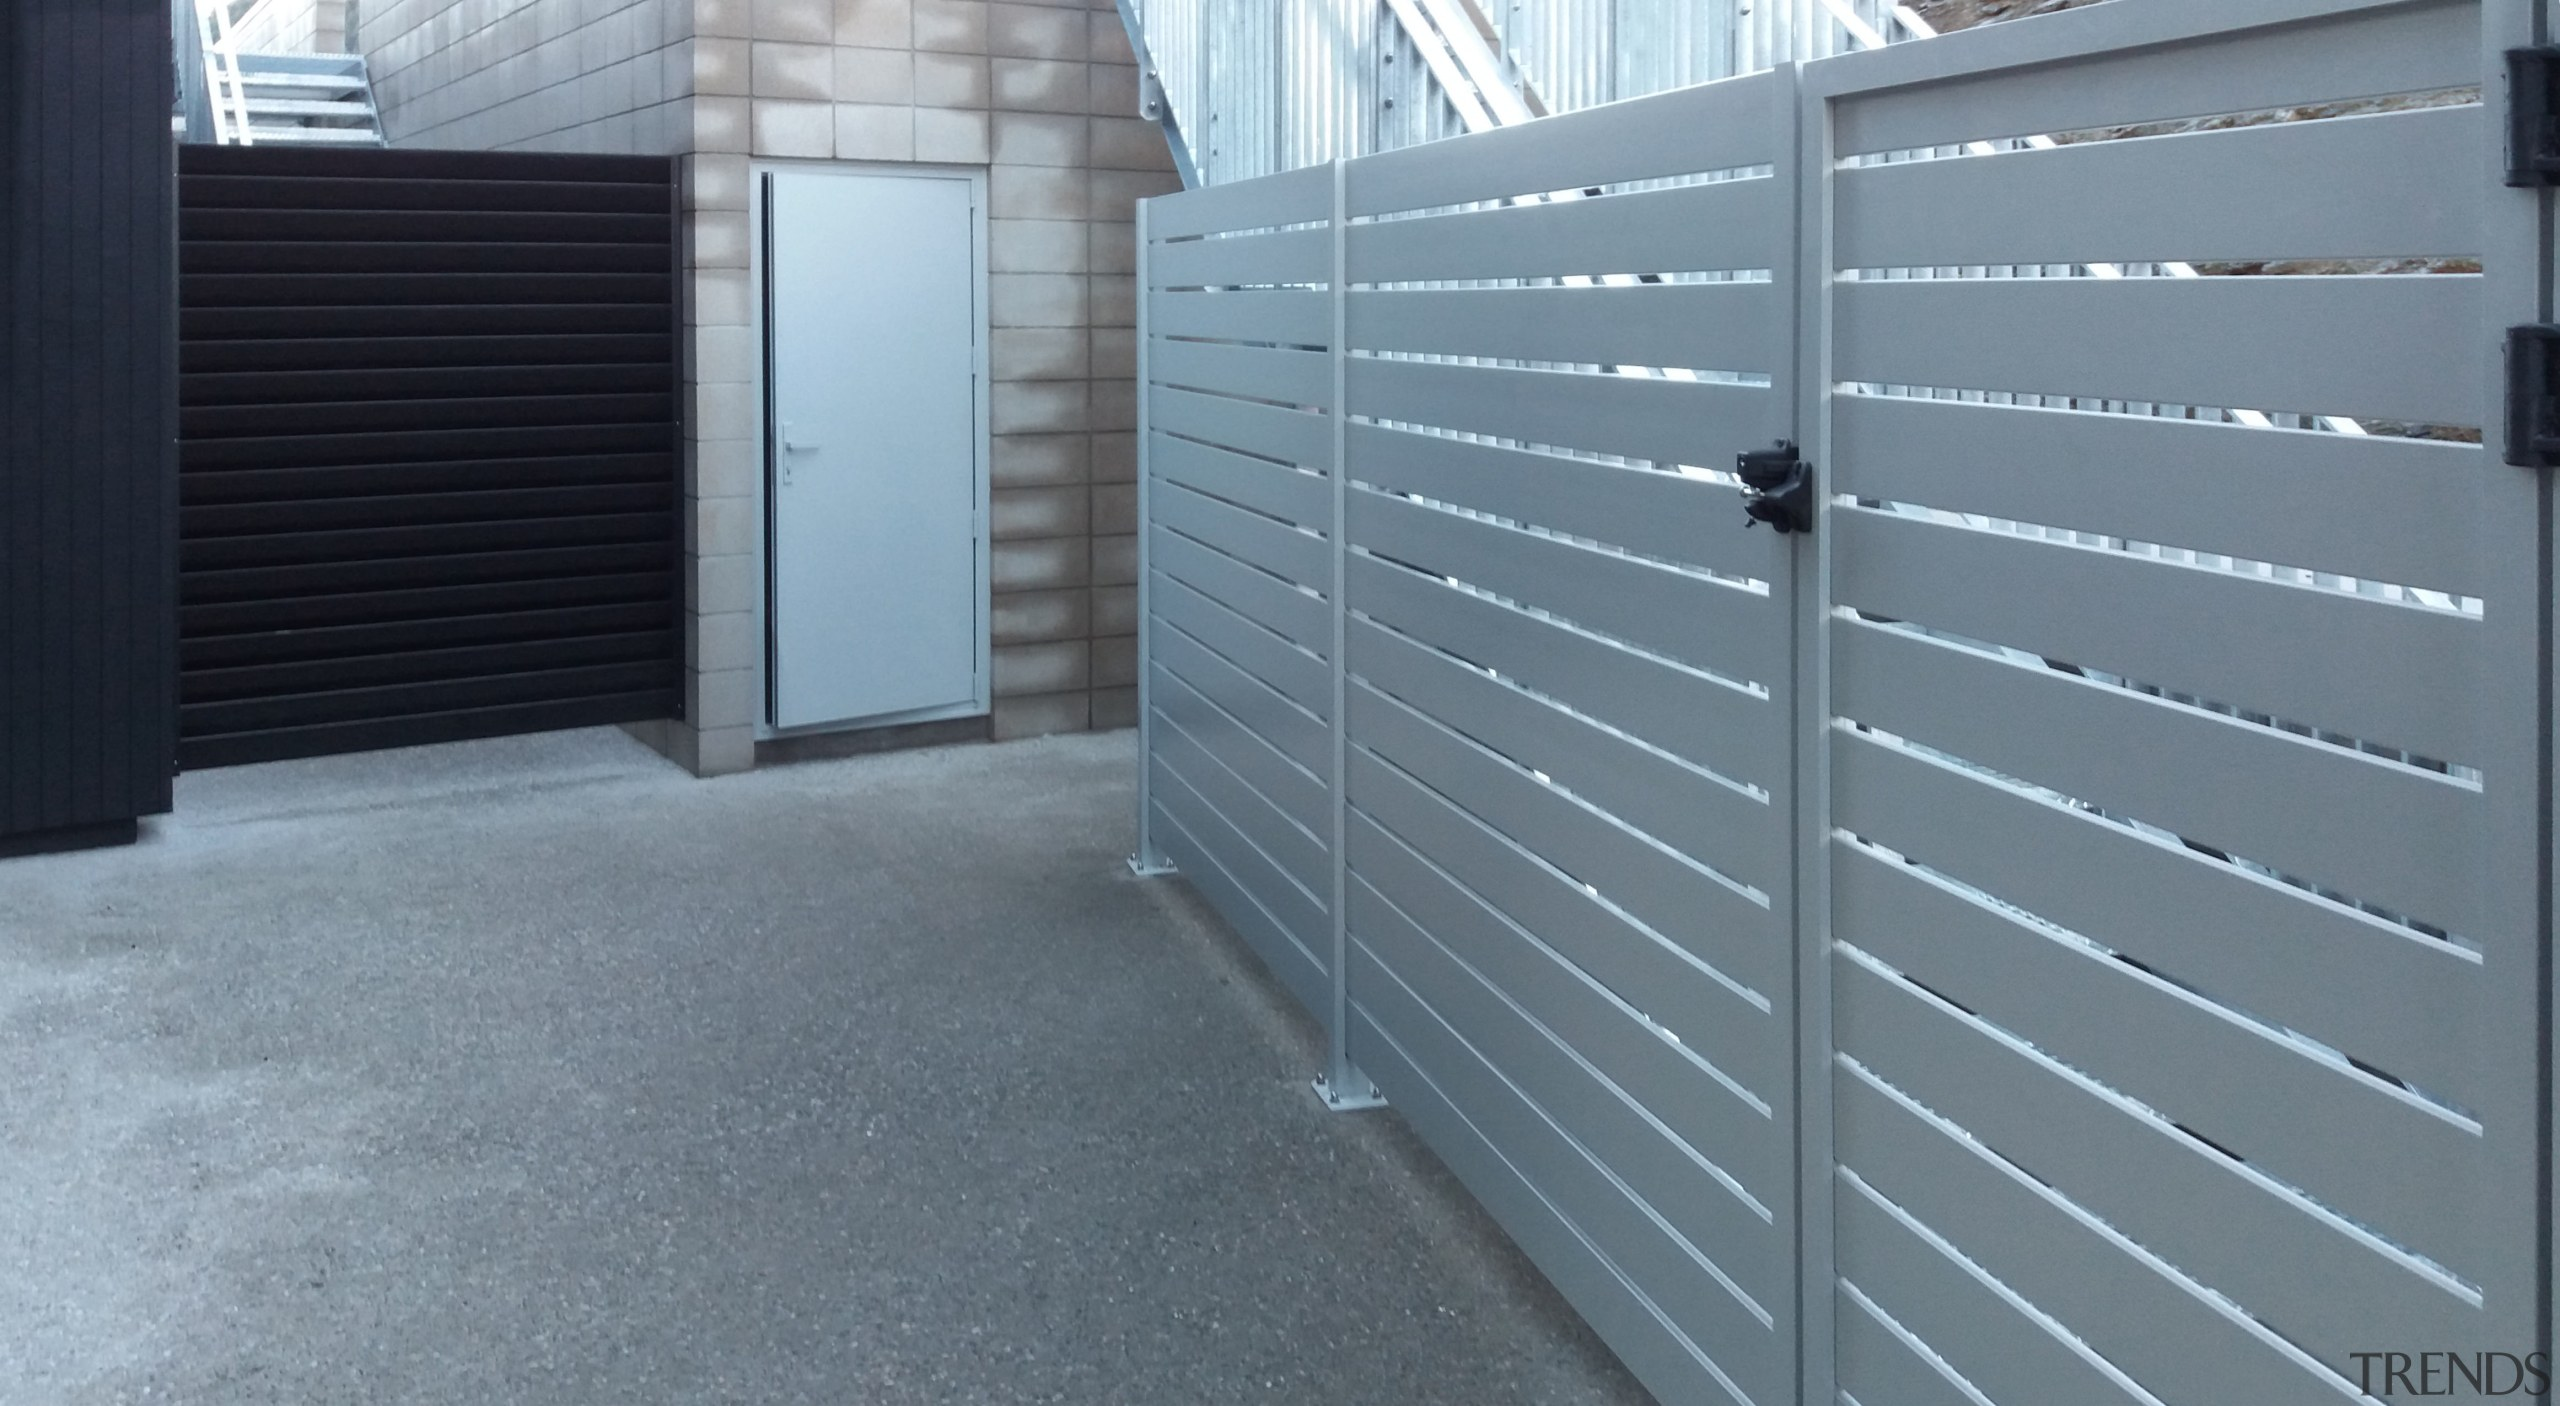 For this apartment building, HomePlus Southland custom-made all daylighting, door, facade, fence, floor, gate, siding, wall, wood, gray